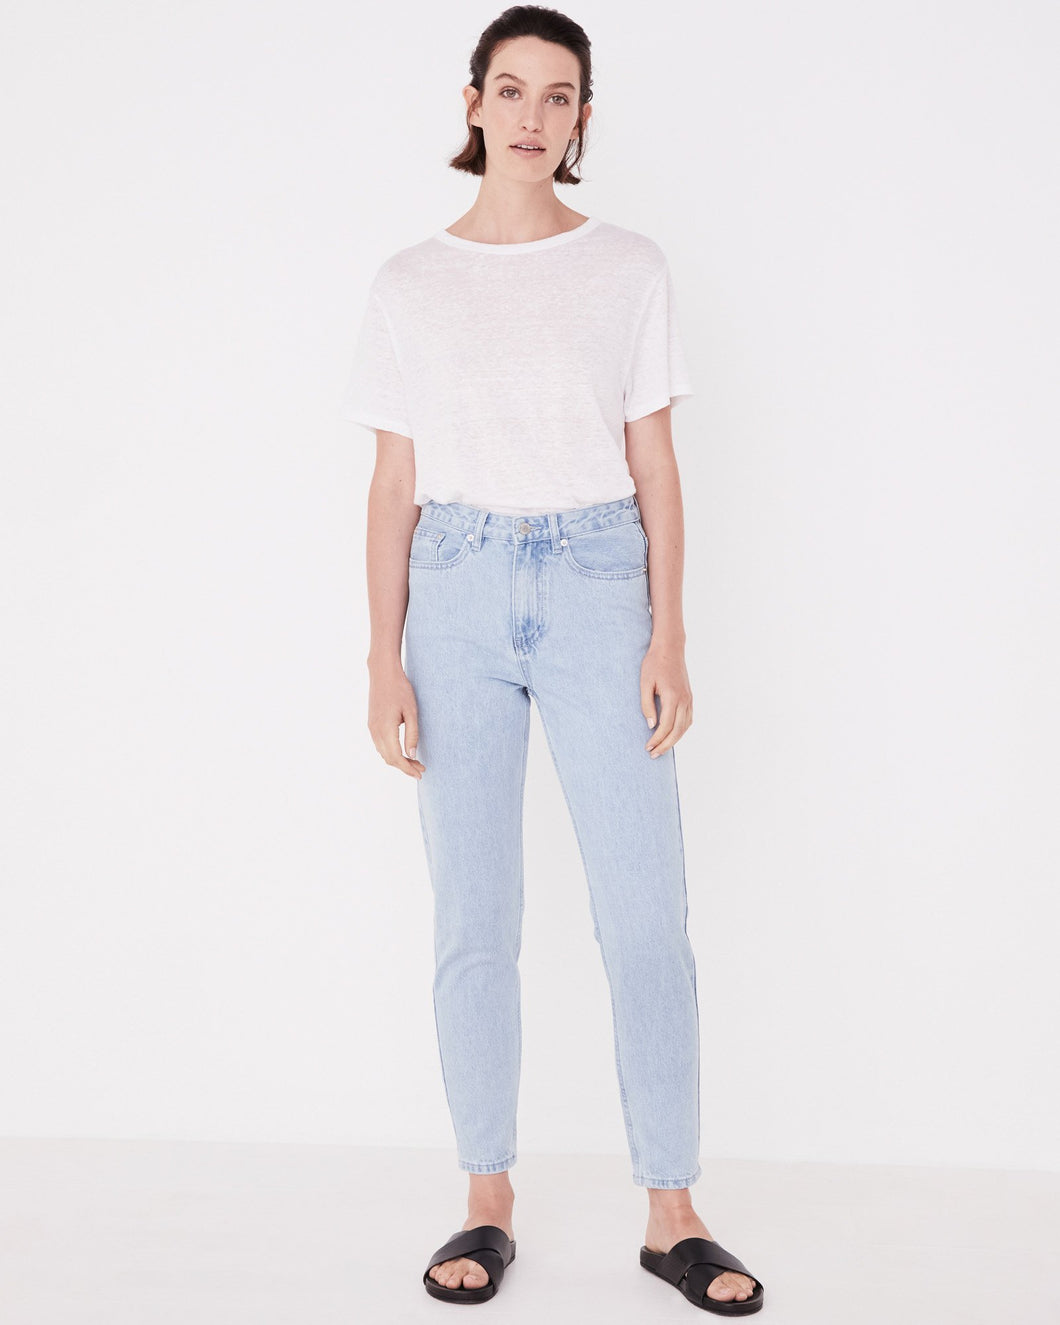 Assembly High Waist Rigid Jean - Pacific Blue